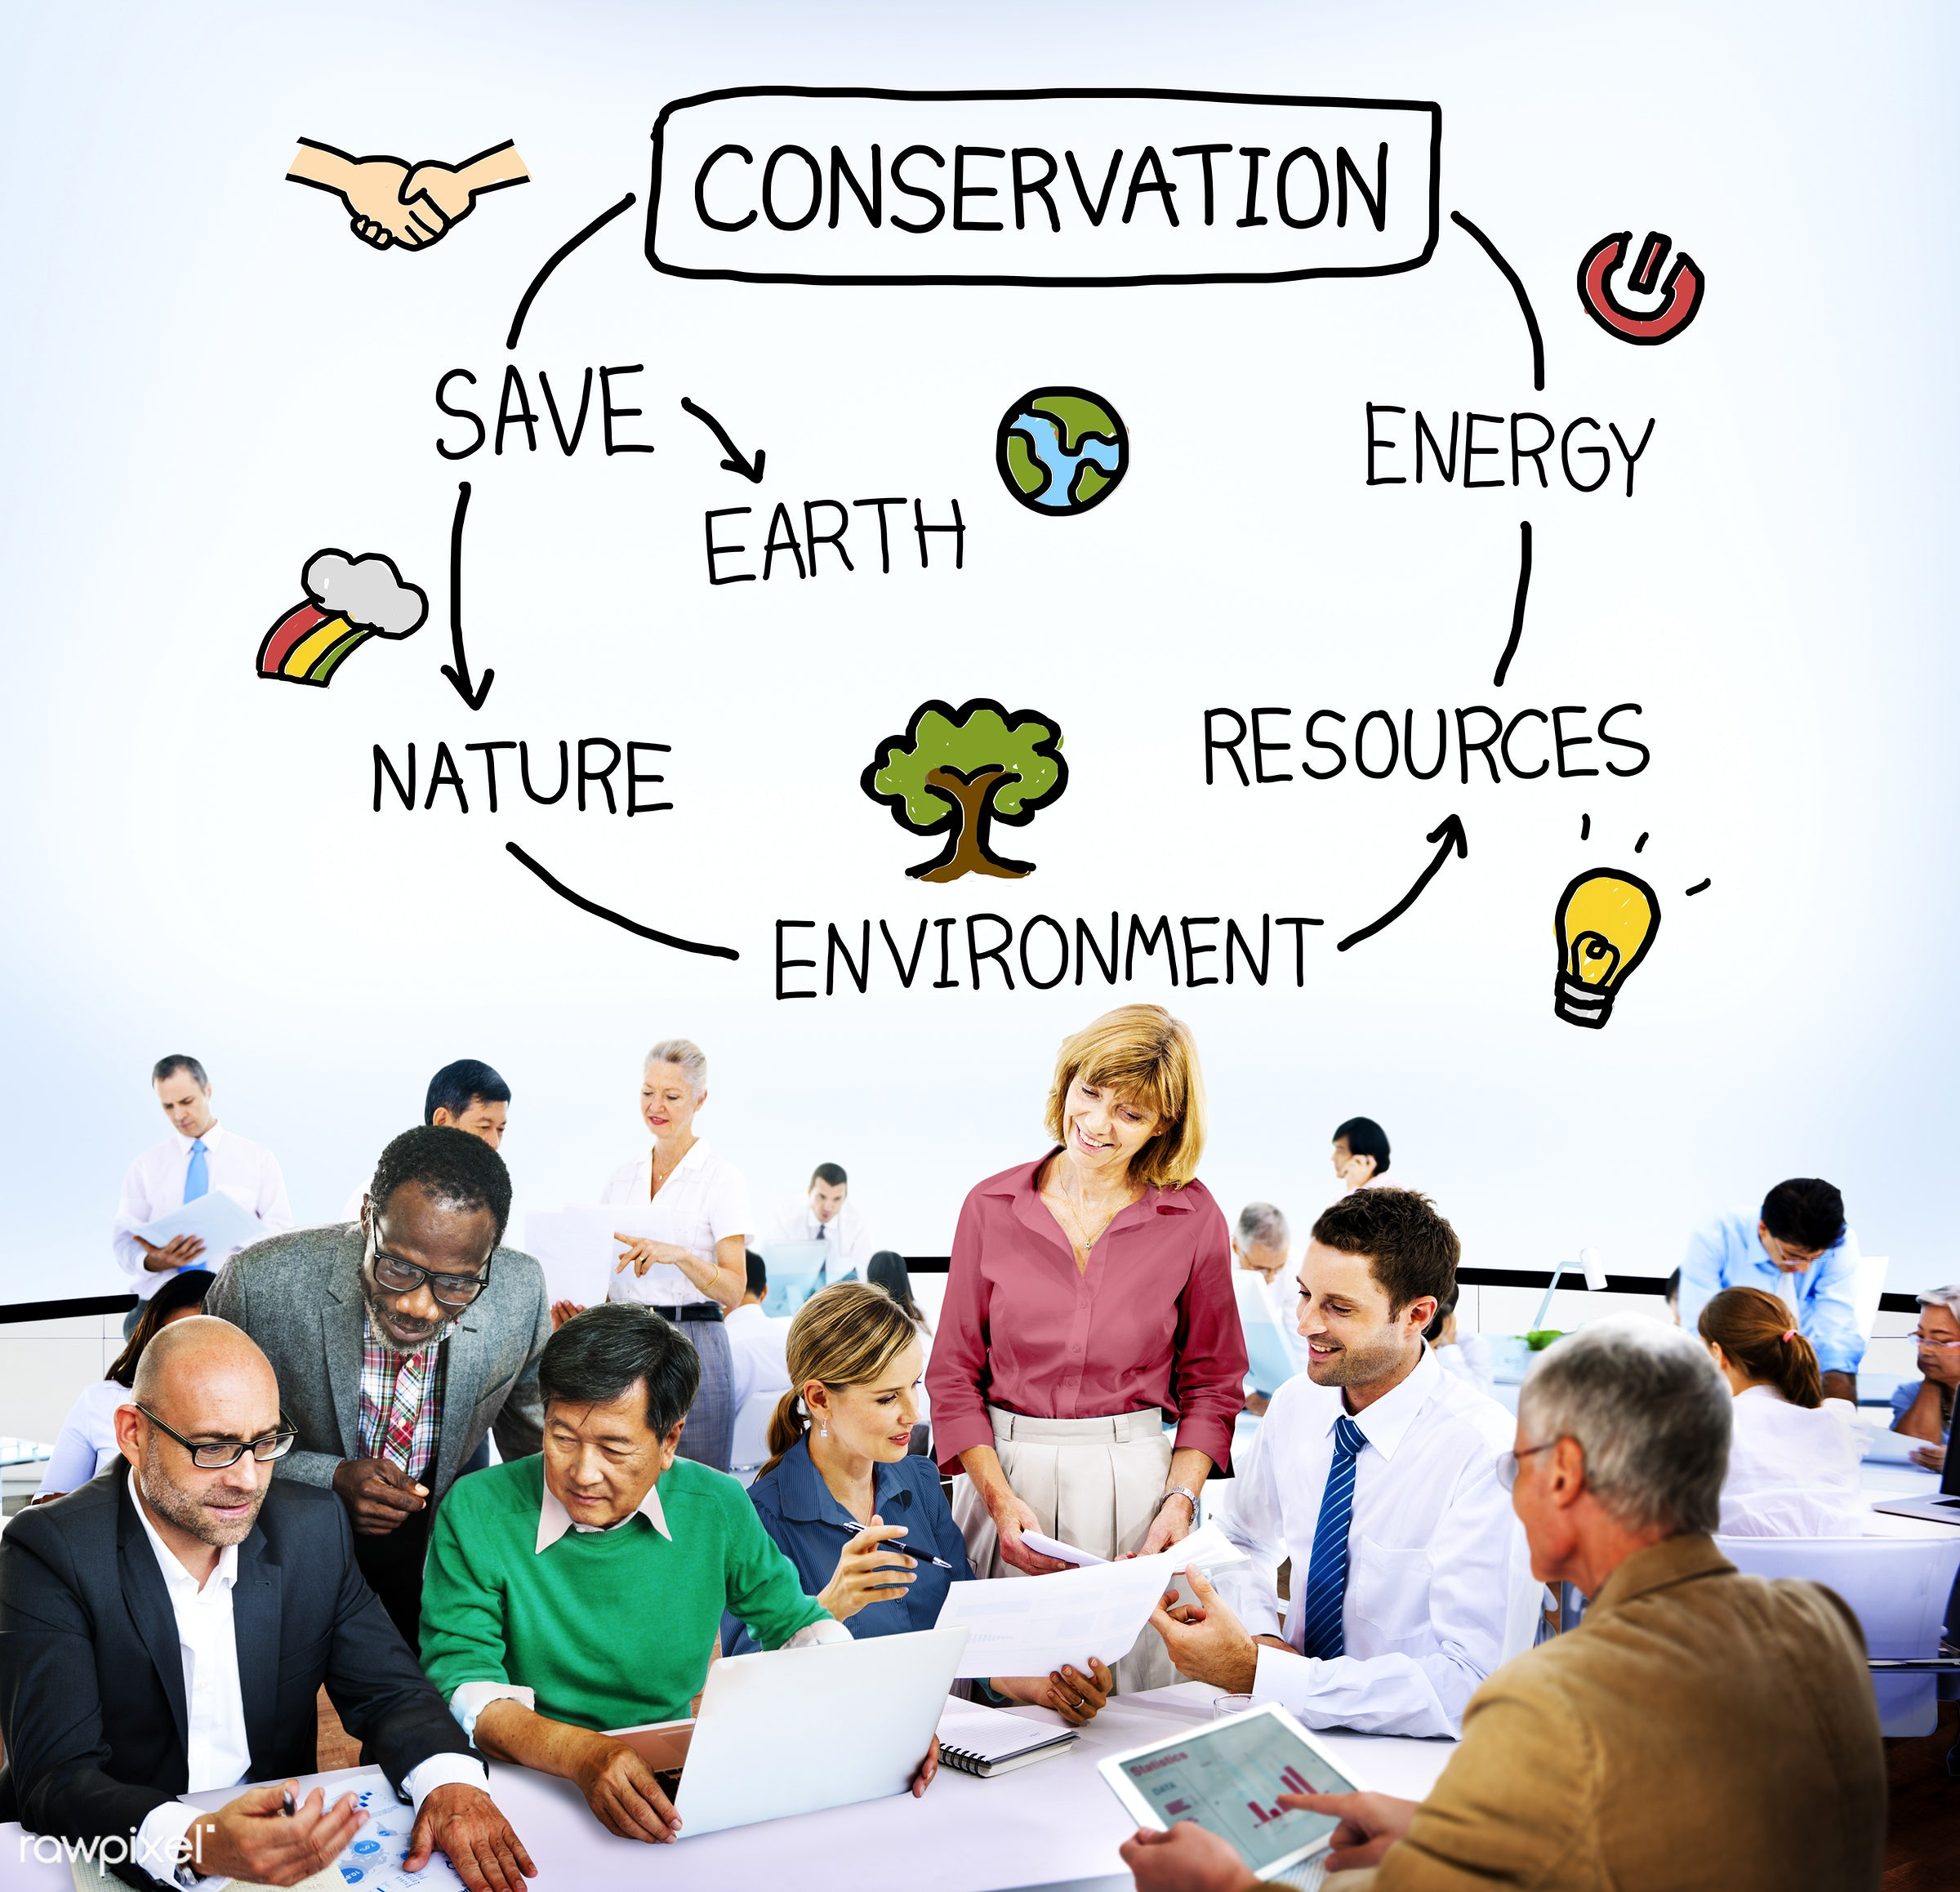 board room, brainstorming, business, business people, climate change, collaboration, communication, conference, conservation...